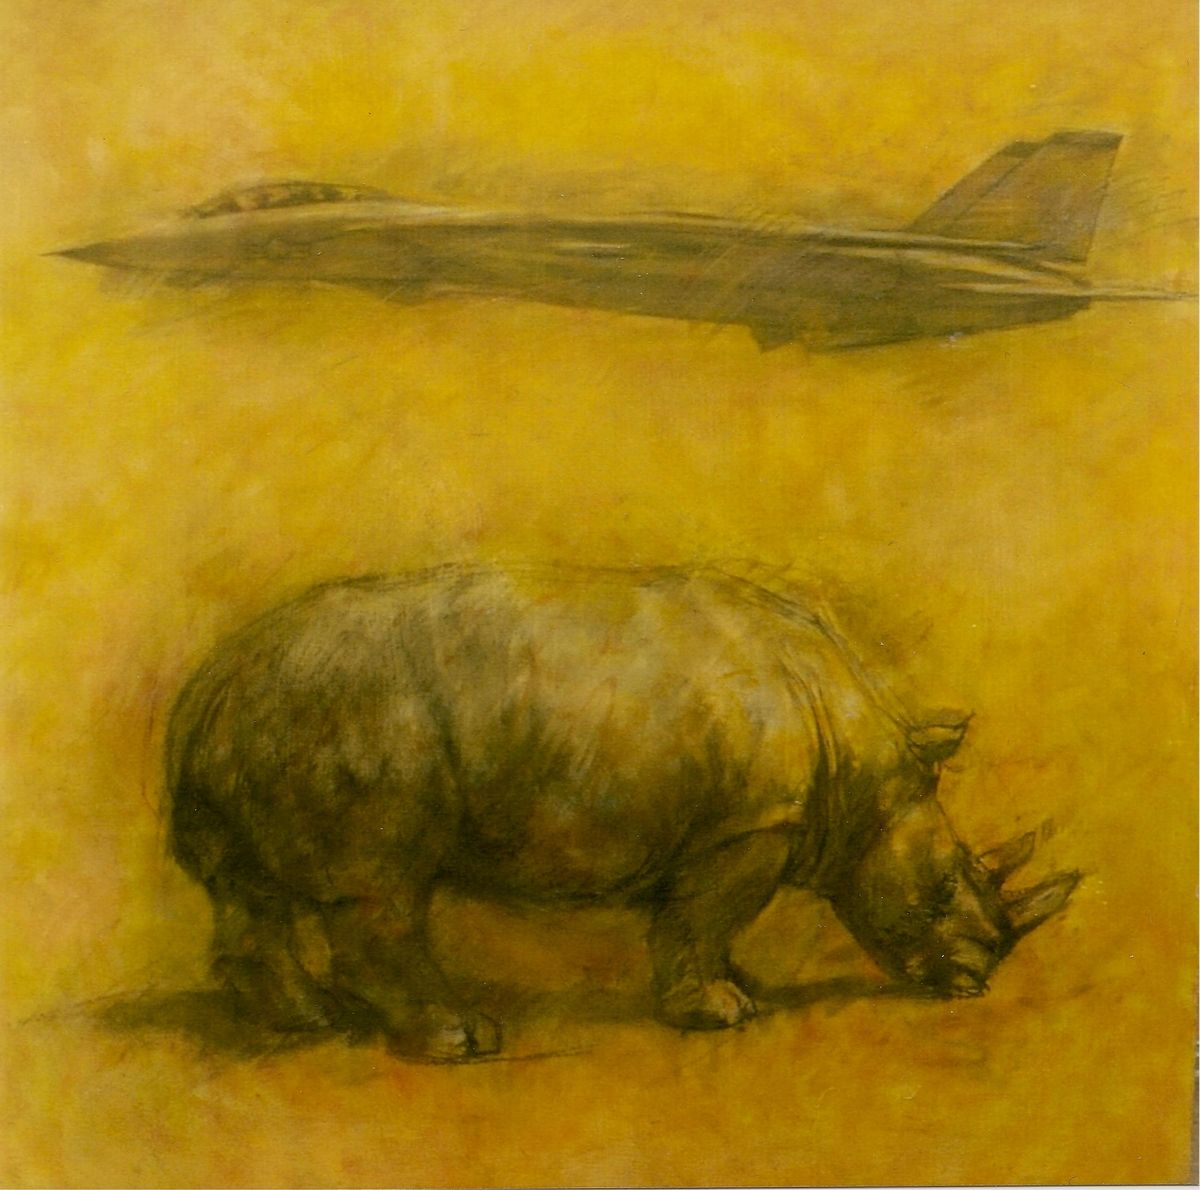 Jet and Rhino,1985 (large view)